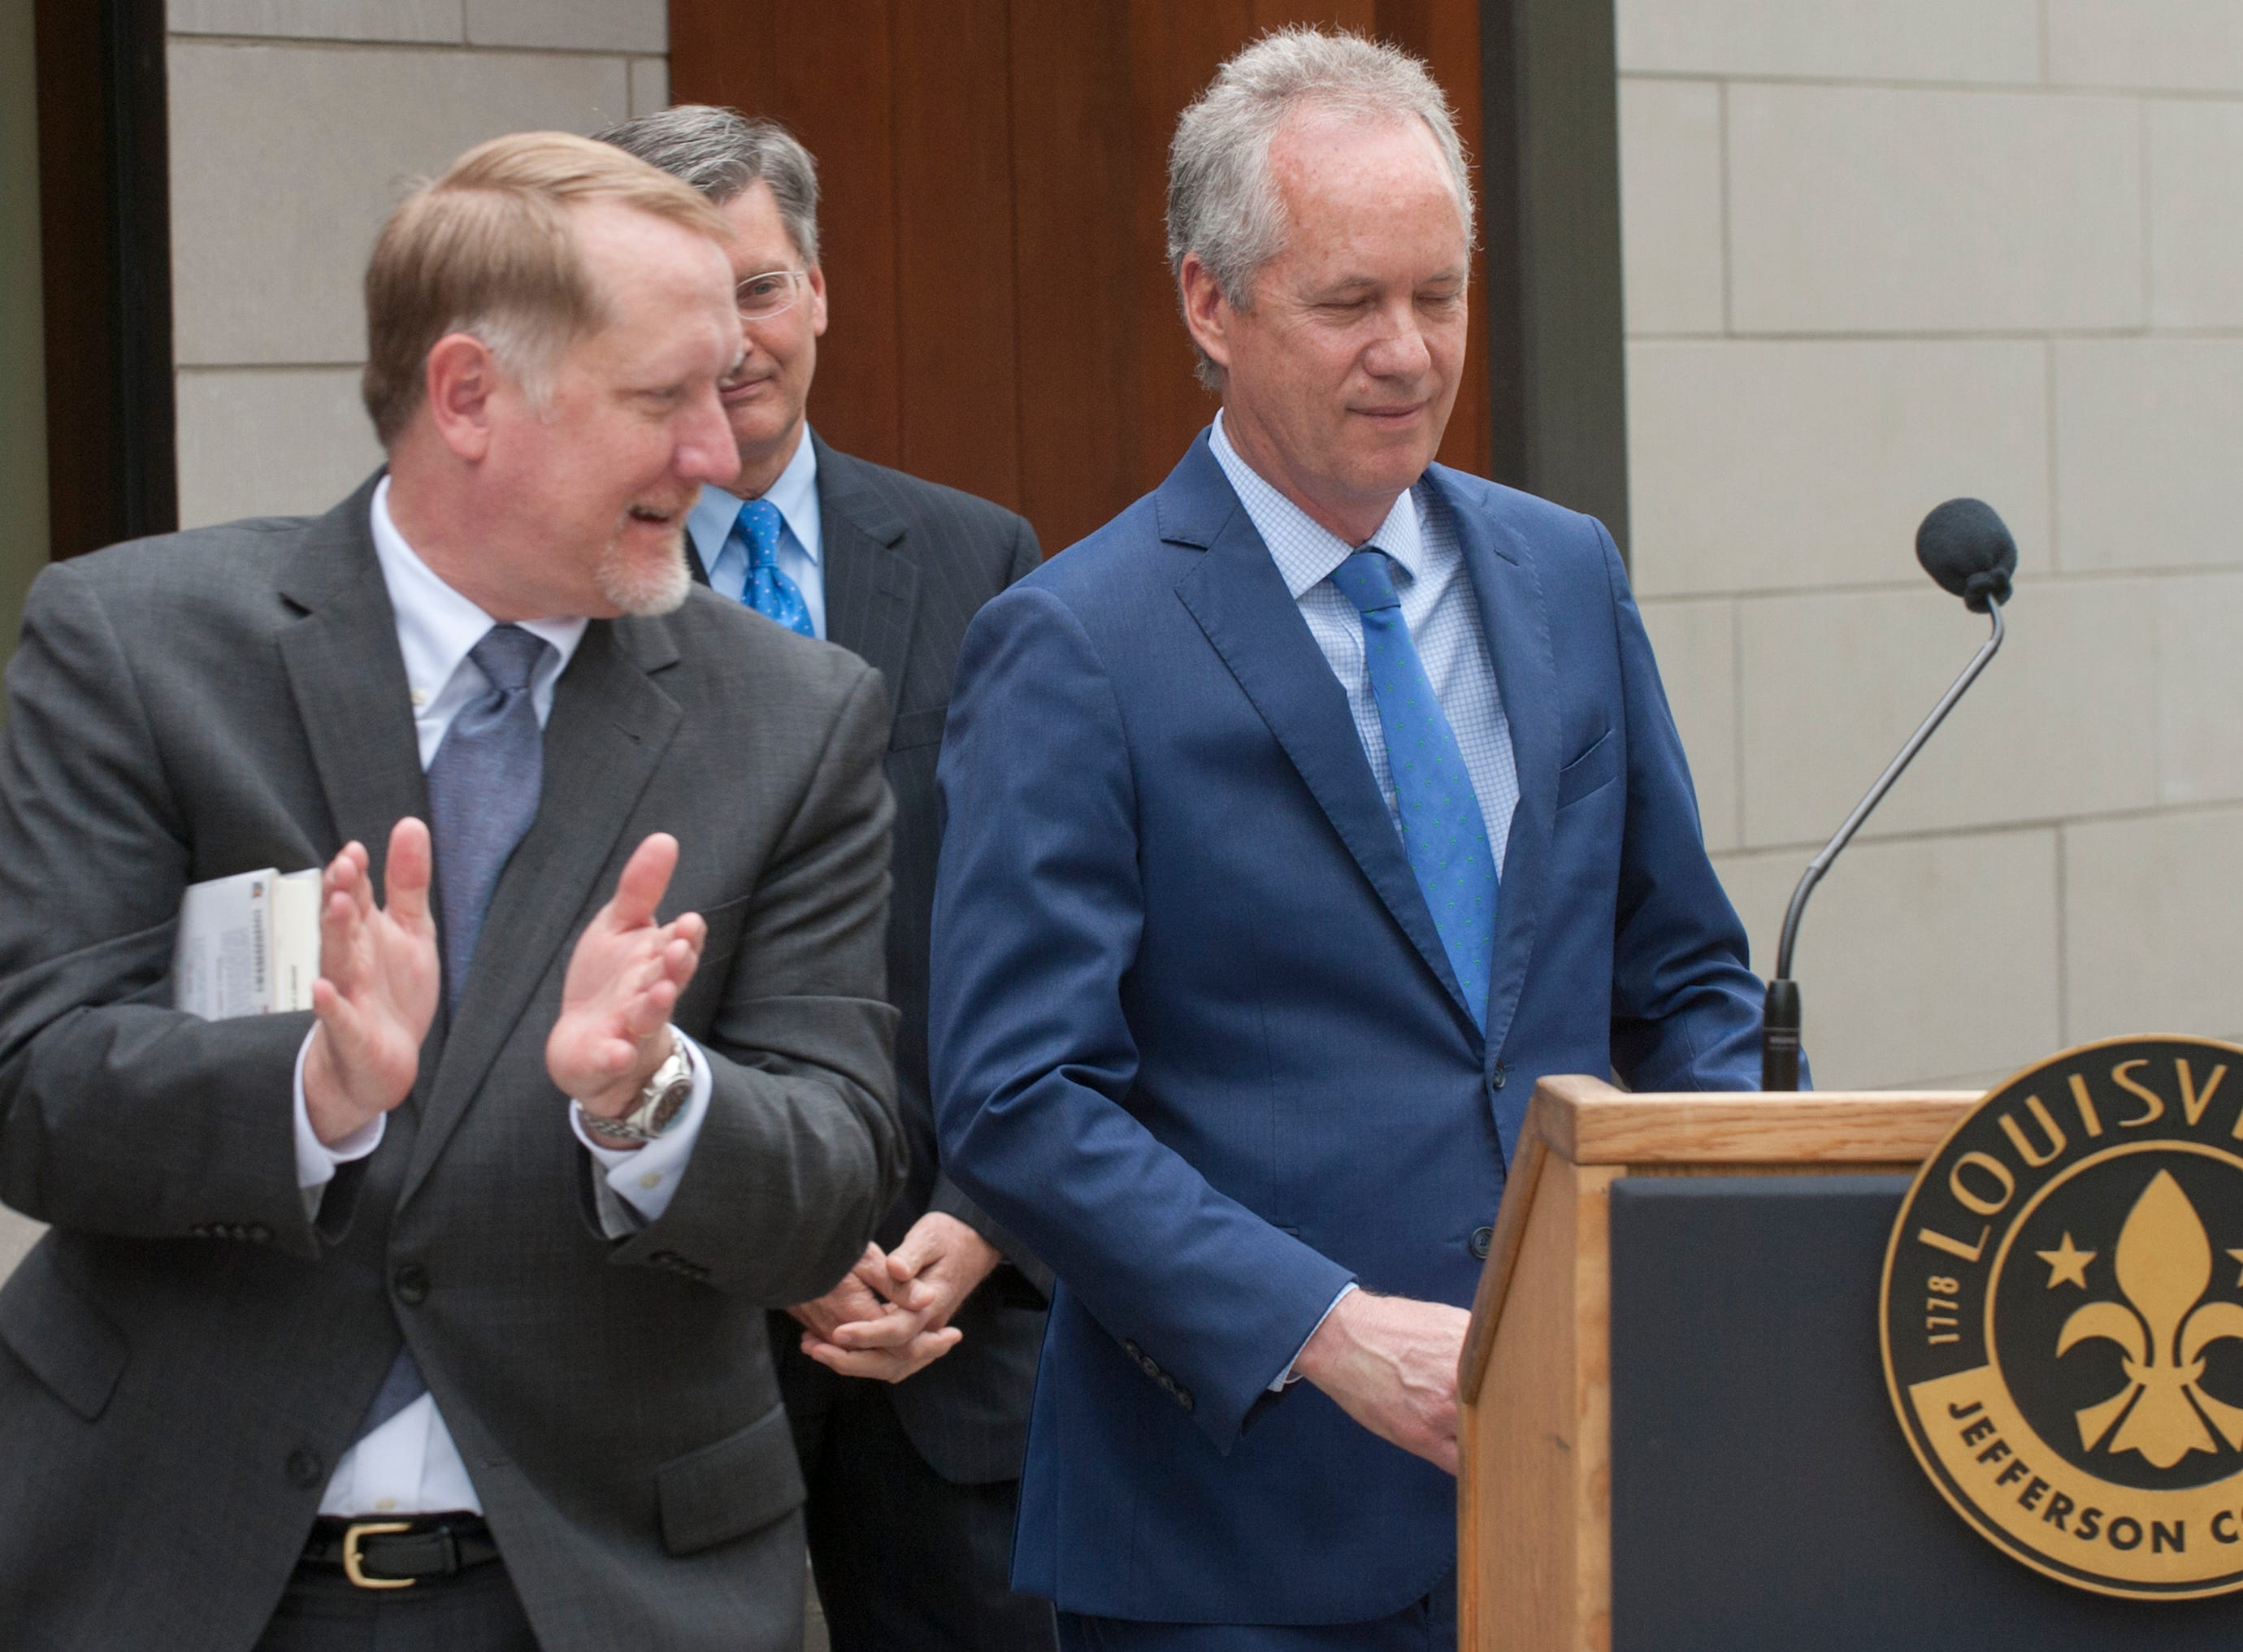 Louisville Free Public Library Executive Director Lee Burchfield applauds Louisville Mayor Greg Fischer as Fisher prepares to address guests at the grand reopening of the St. Matthews library.  The City of Louisville joined the City of St. Matthews, each donating $1 million dollars to the library's new addition which gives the library an additional 7,800 square feet of space. May 9, 2019